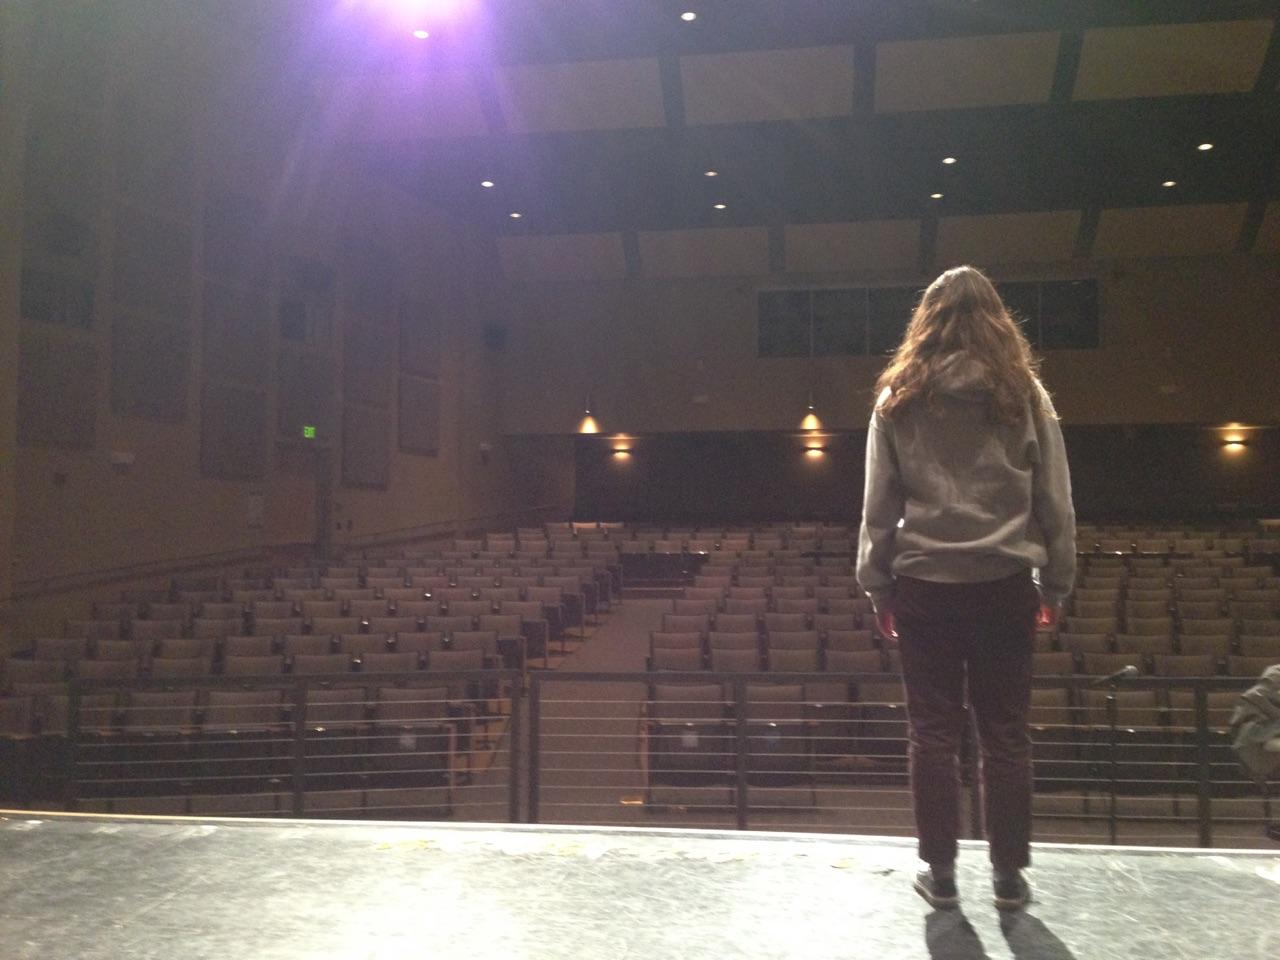 Meilene Jones, a junior, practices performing on stage in Carlmont's performing arts center.